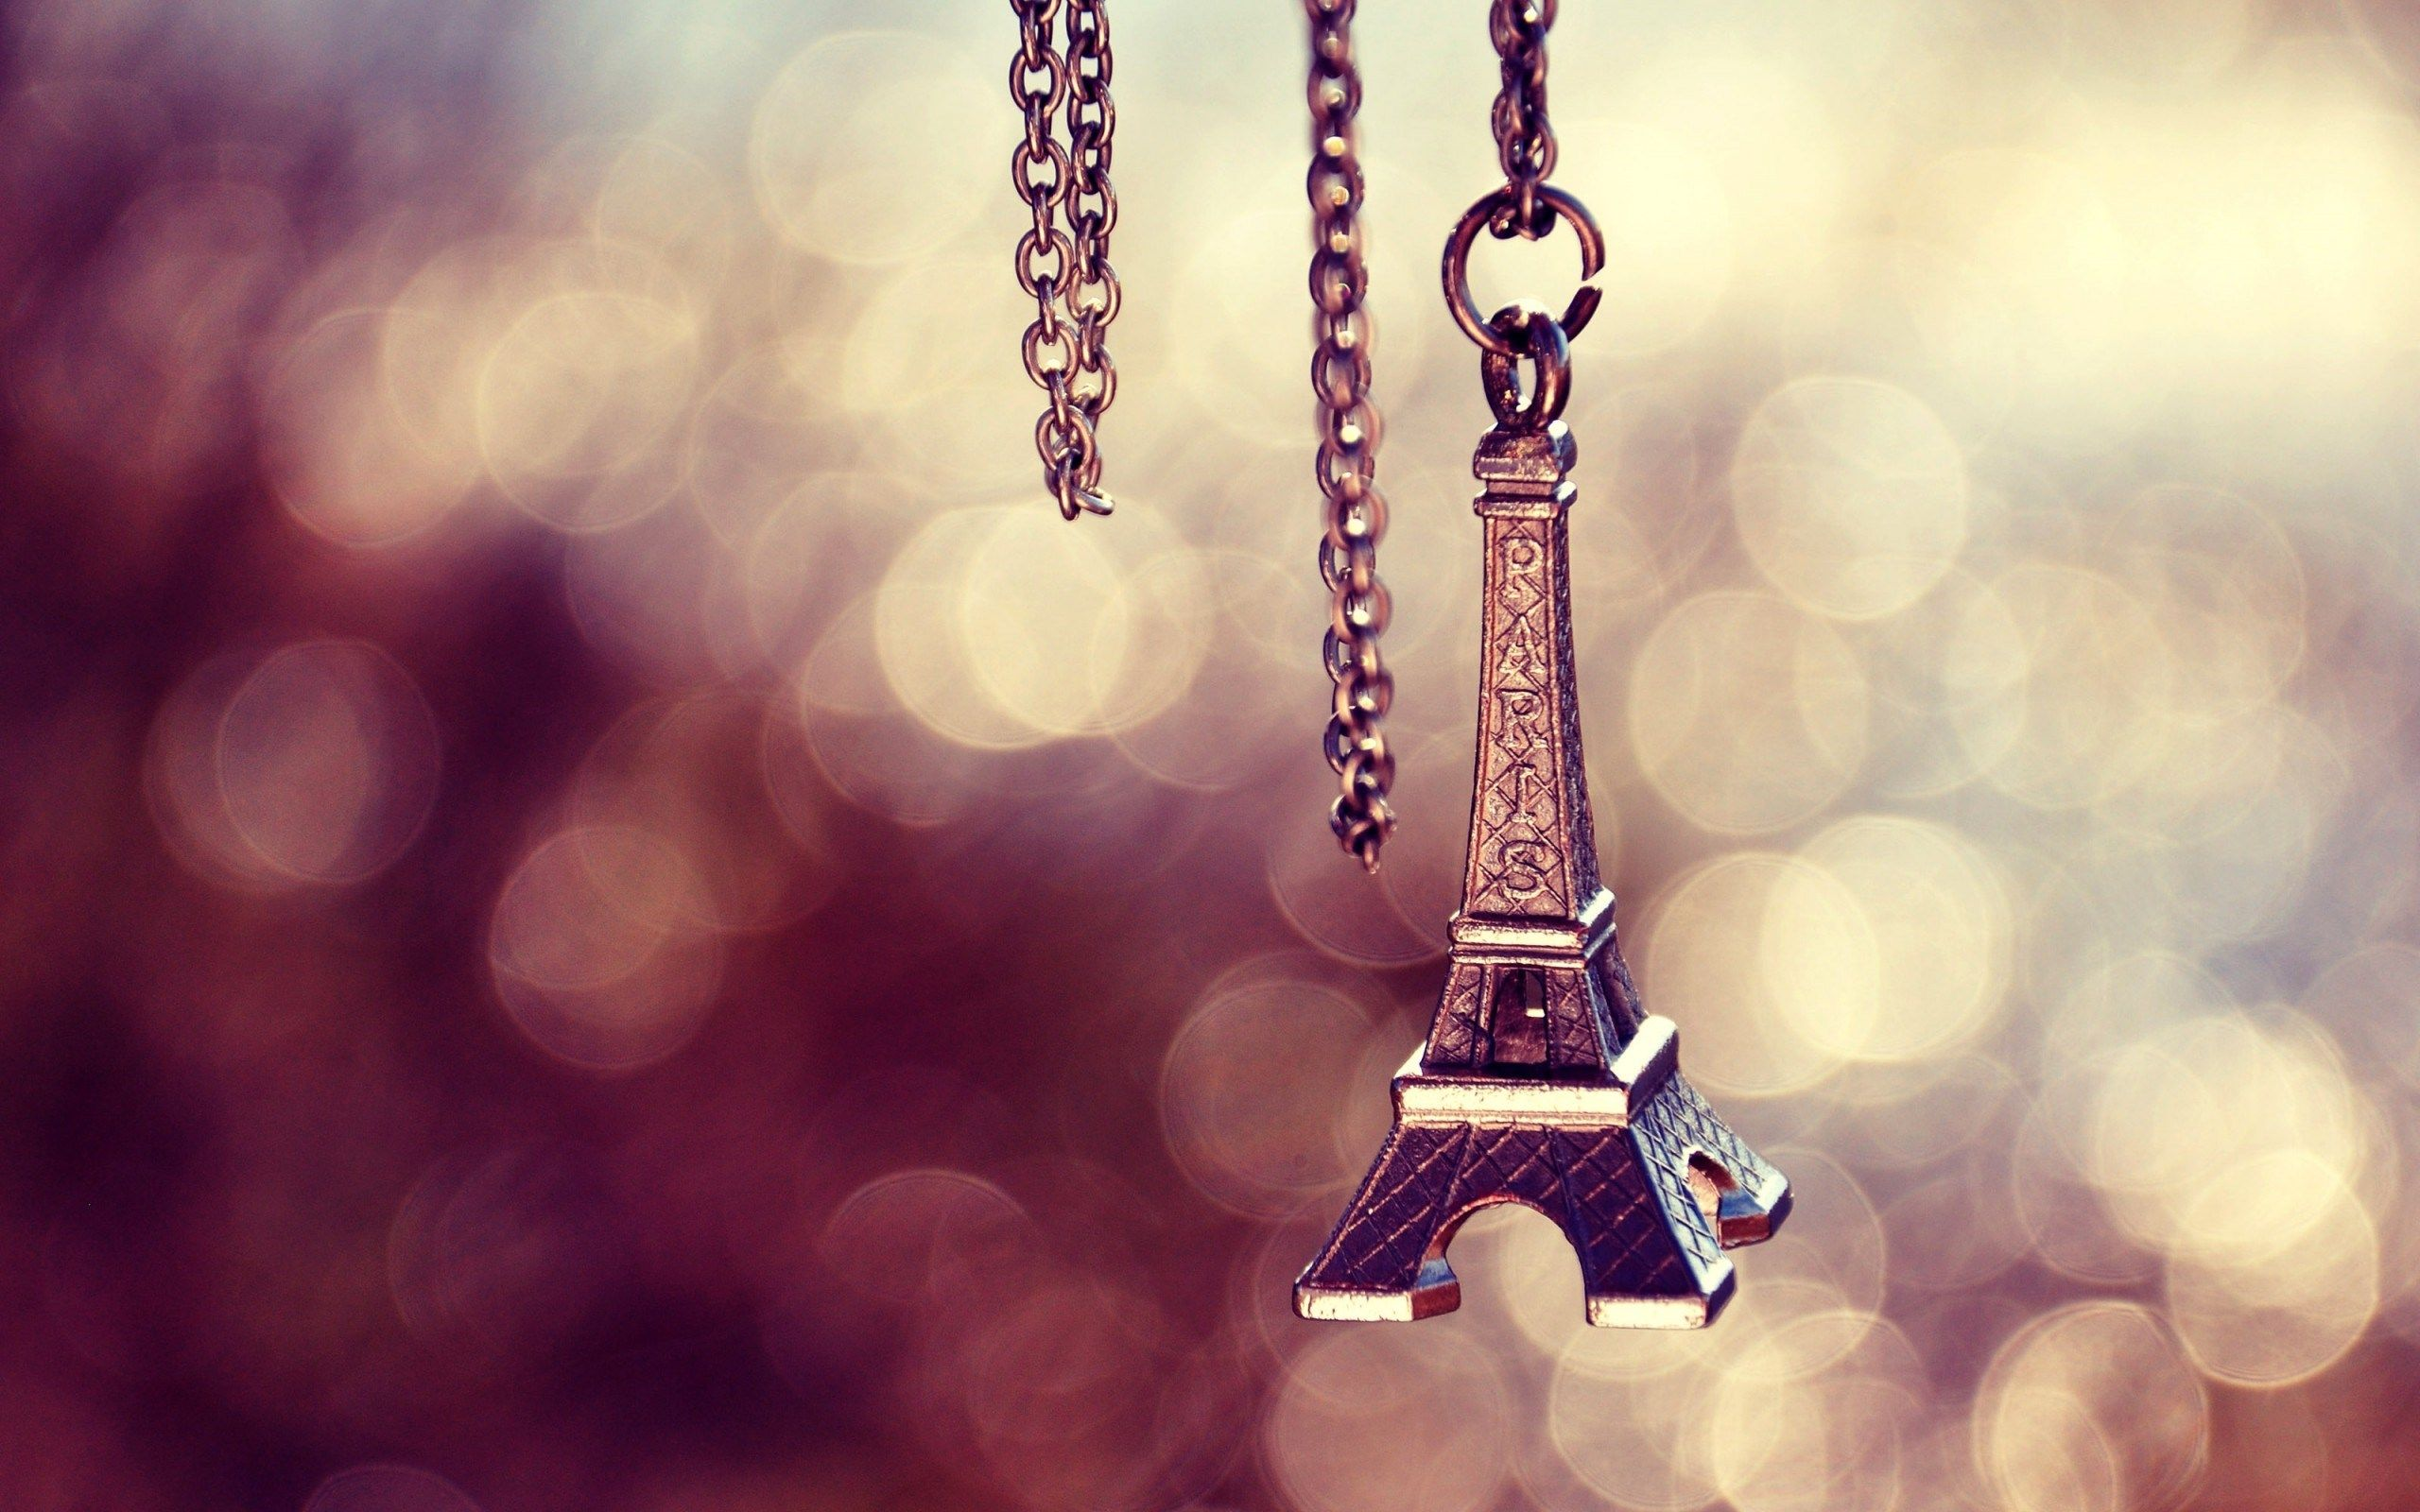 Cute Eiffel Tower Wallpaper Desktop Background X55a3 Ahuhah Com